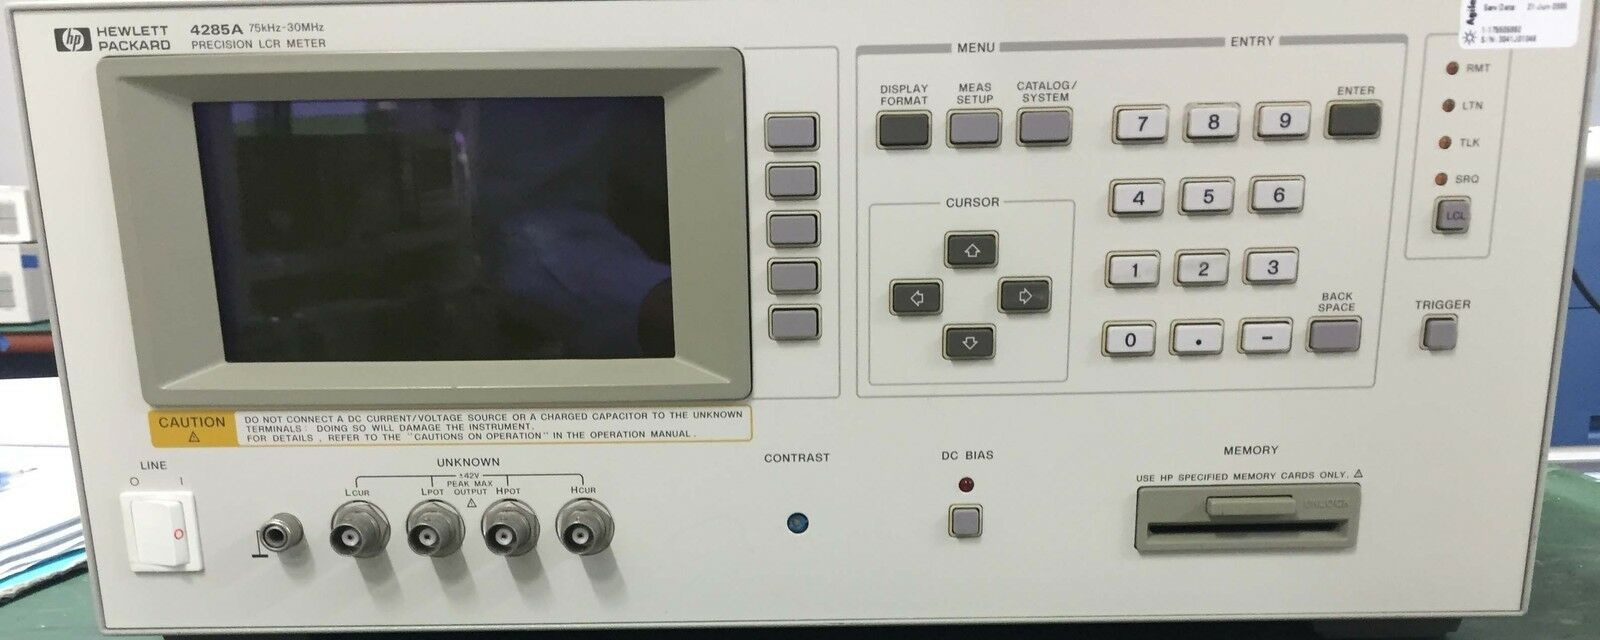 Agilent 4285a Lcr Meter Hp Label 352000 Picclick Lc Based On Pic16f84a 1 Of 3only Available